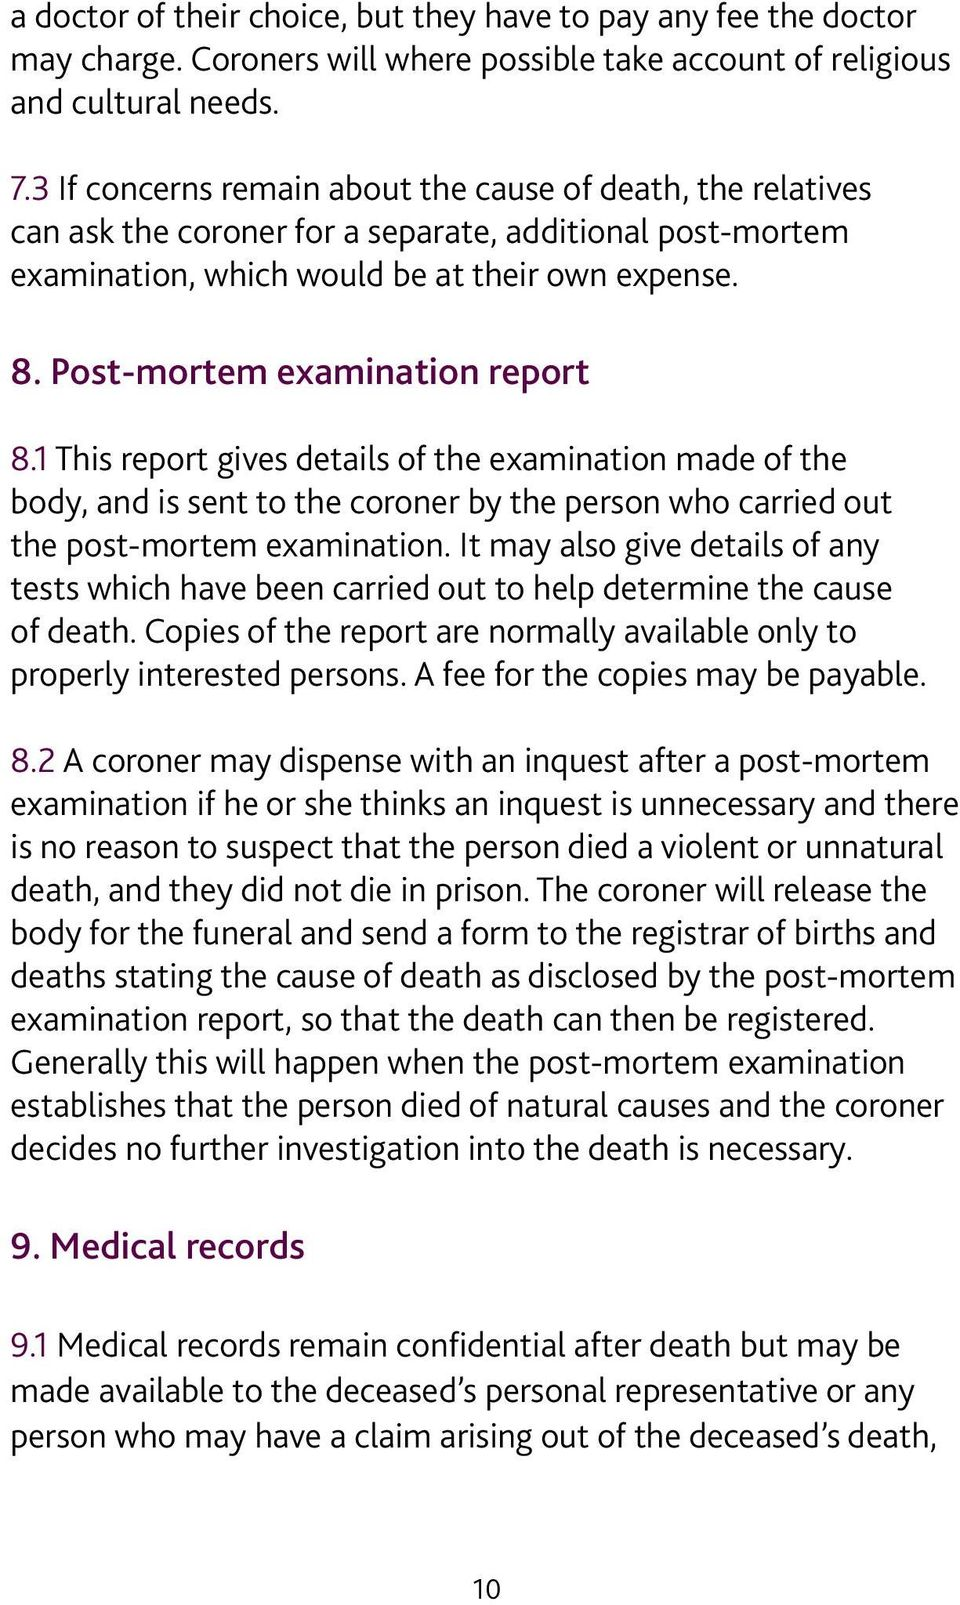 Post-mortem examination report 8.1 This report gives details of the examination made of the body, and is sent to the coroner by the person who carried out the post-mortem examination.